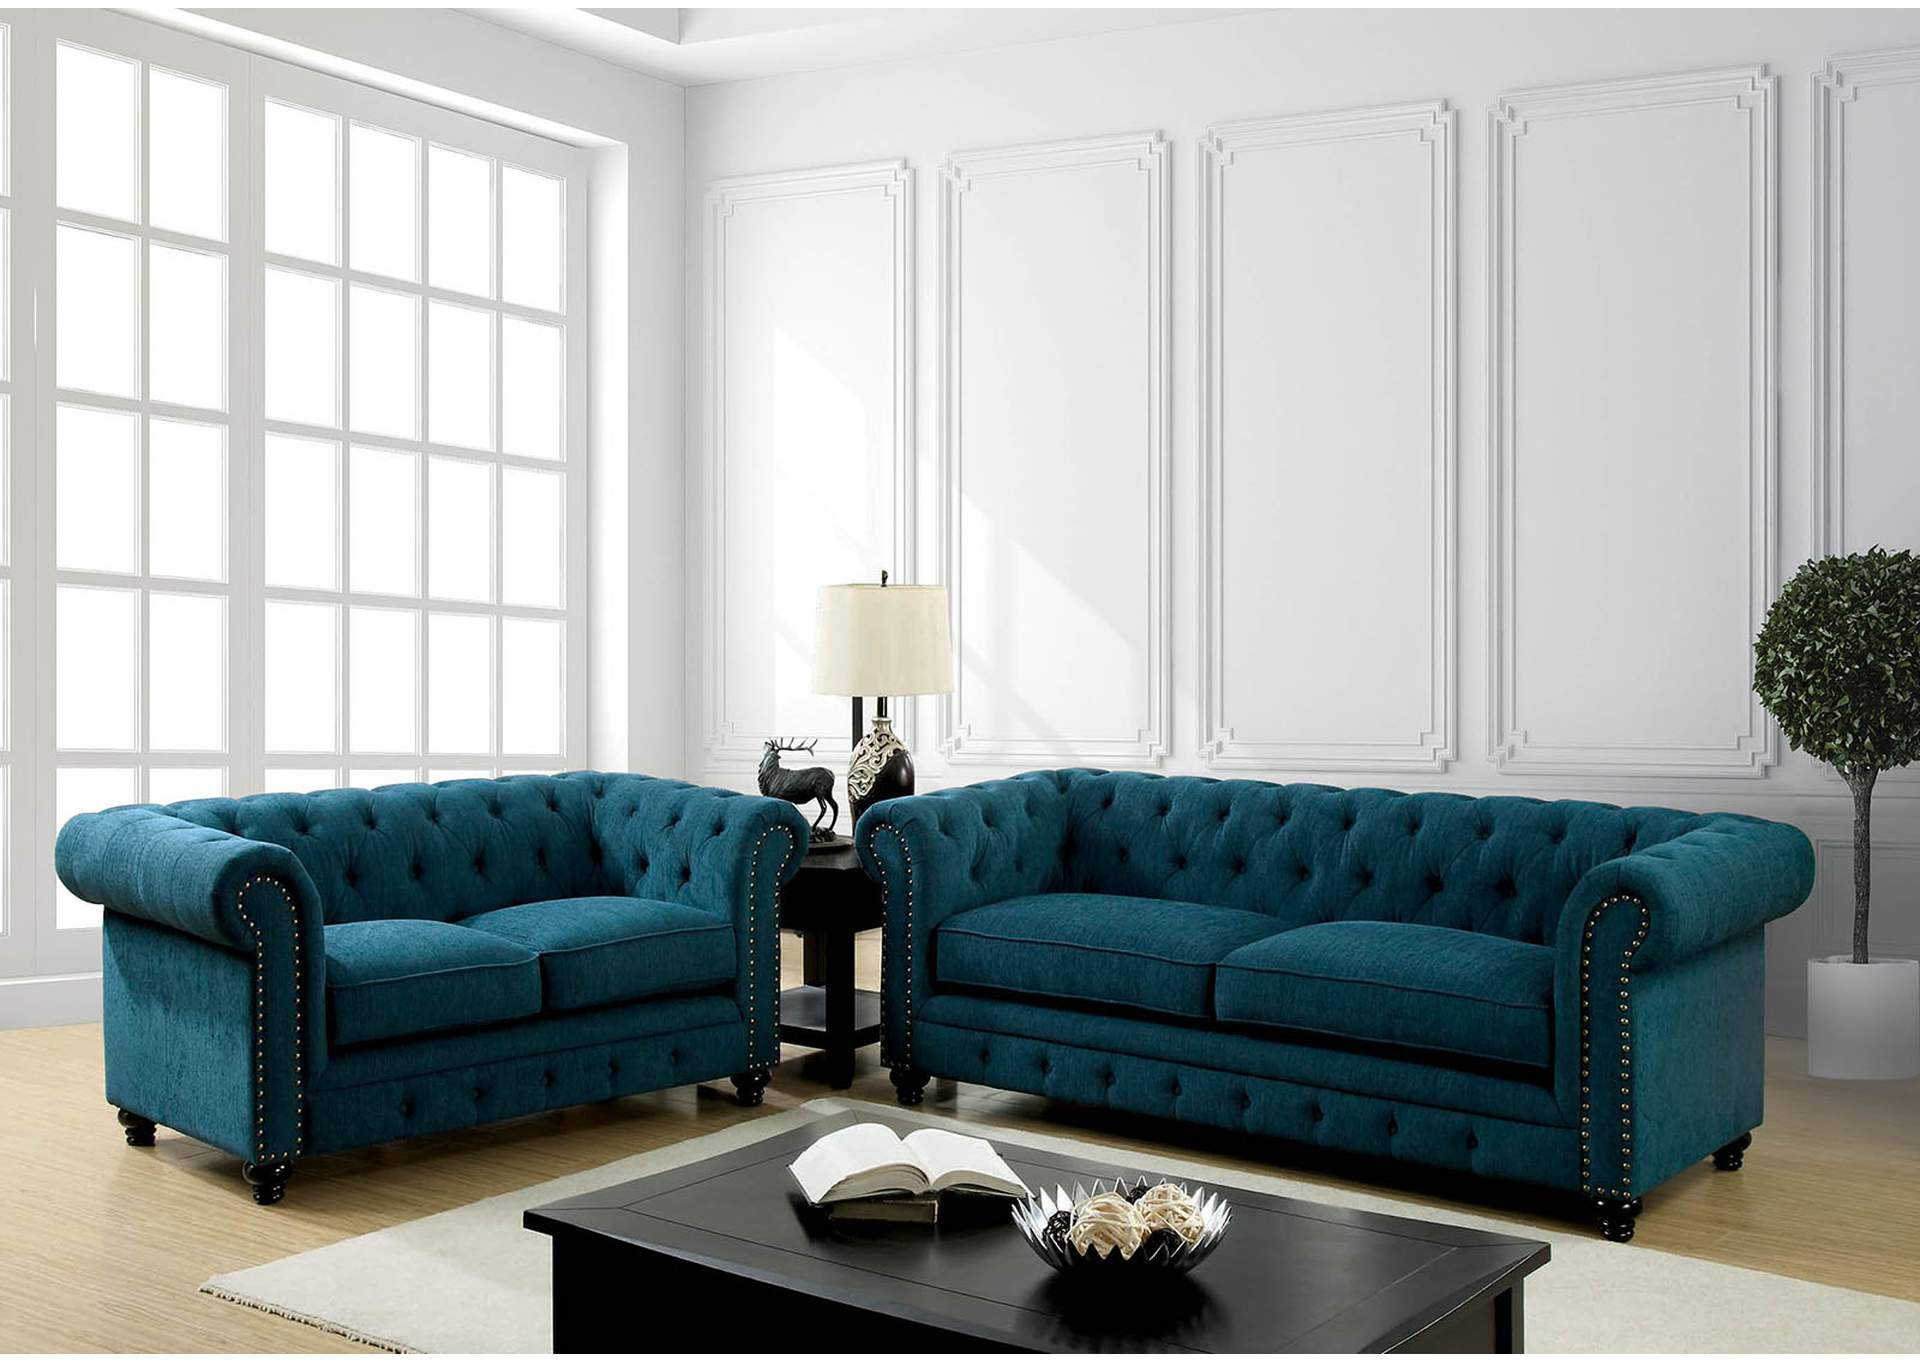 In home furniture stanford dark teal sofa and loveseat for Living room furniture 0 finance